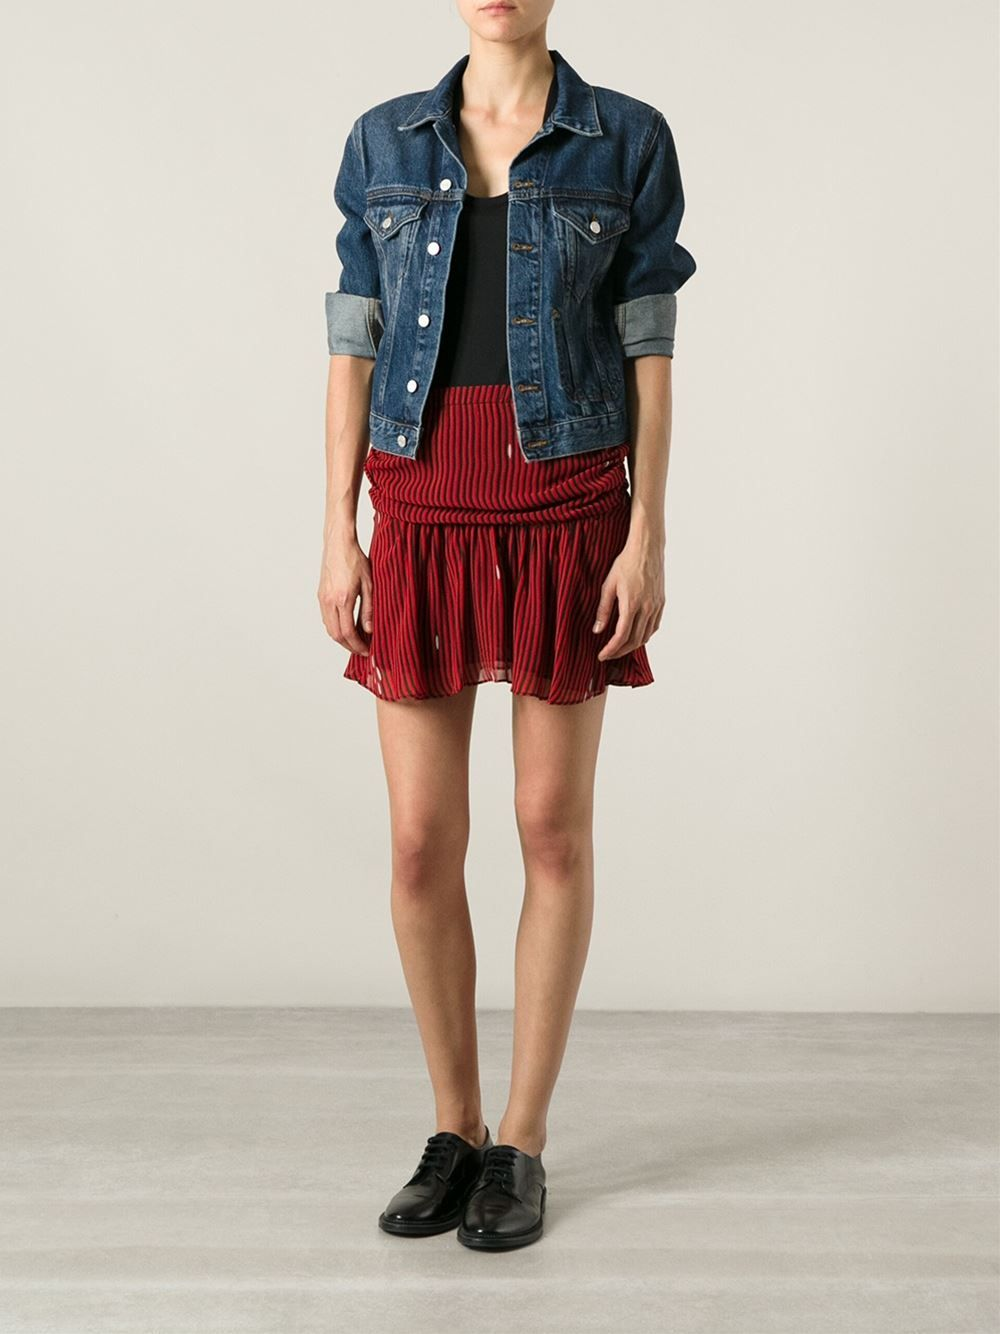 35a43af3bee5 Isabel Marant Étoile Striped Short Skirt - Eraldo - Farfetch.com ...